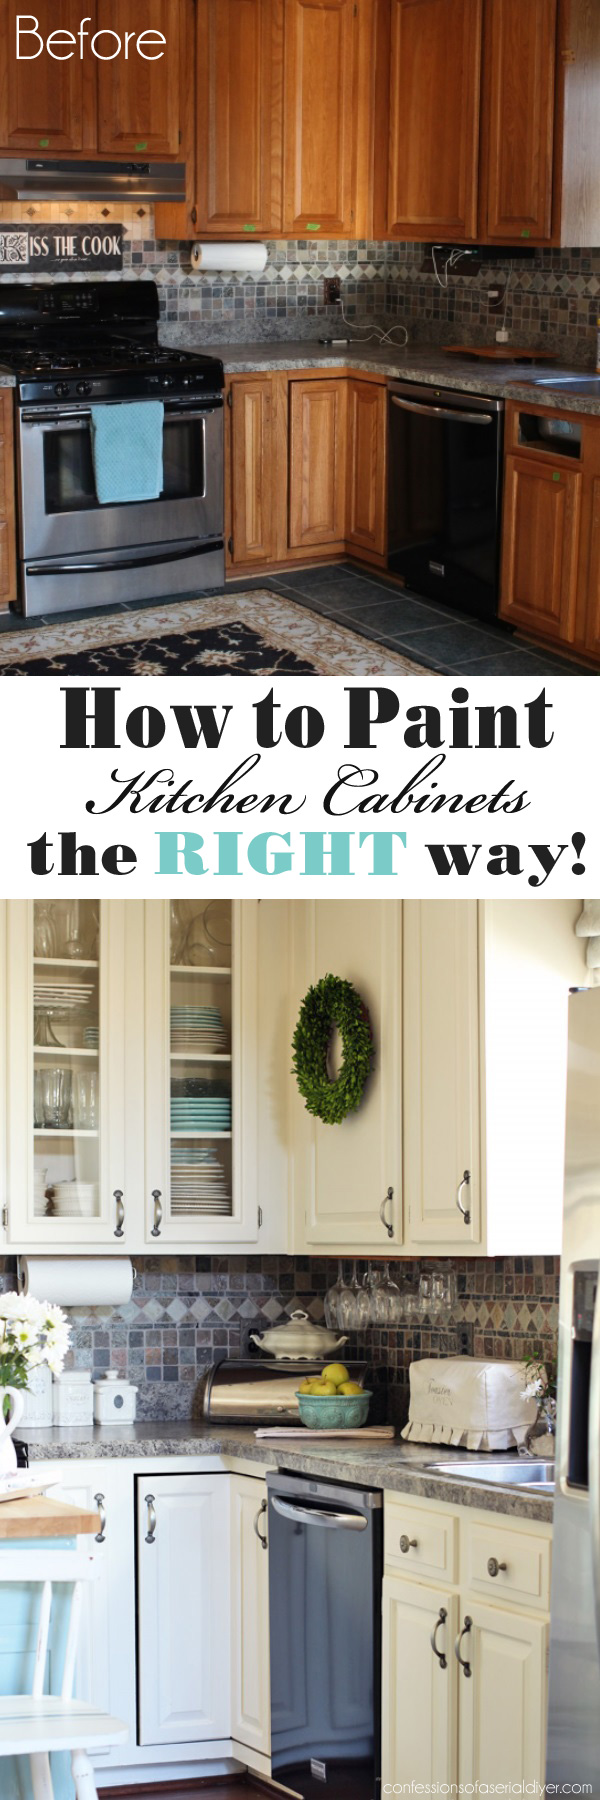 How to Paint Kitchen Cabinets the RIGHT way from Confessions of a Serial Do-it & How to Paint Kitchen Cabinets (A Step-by-Step Guide) | Confessions ...